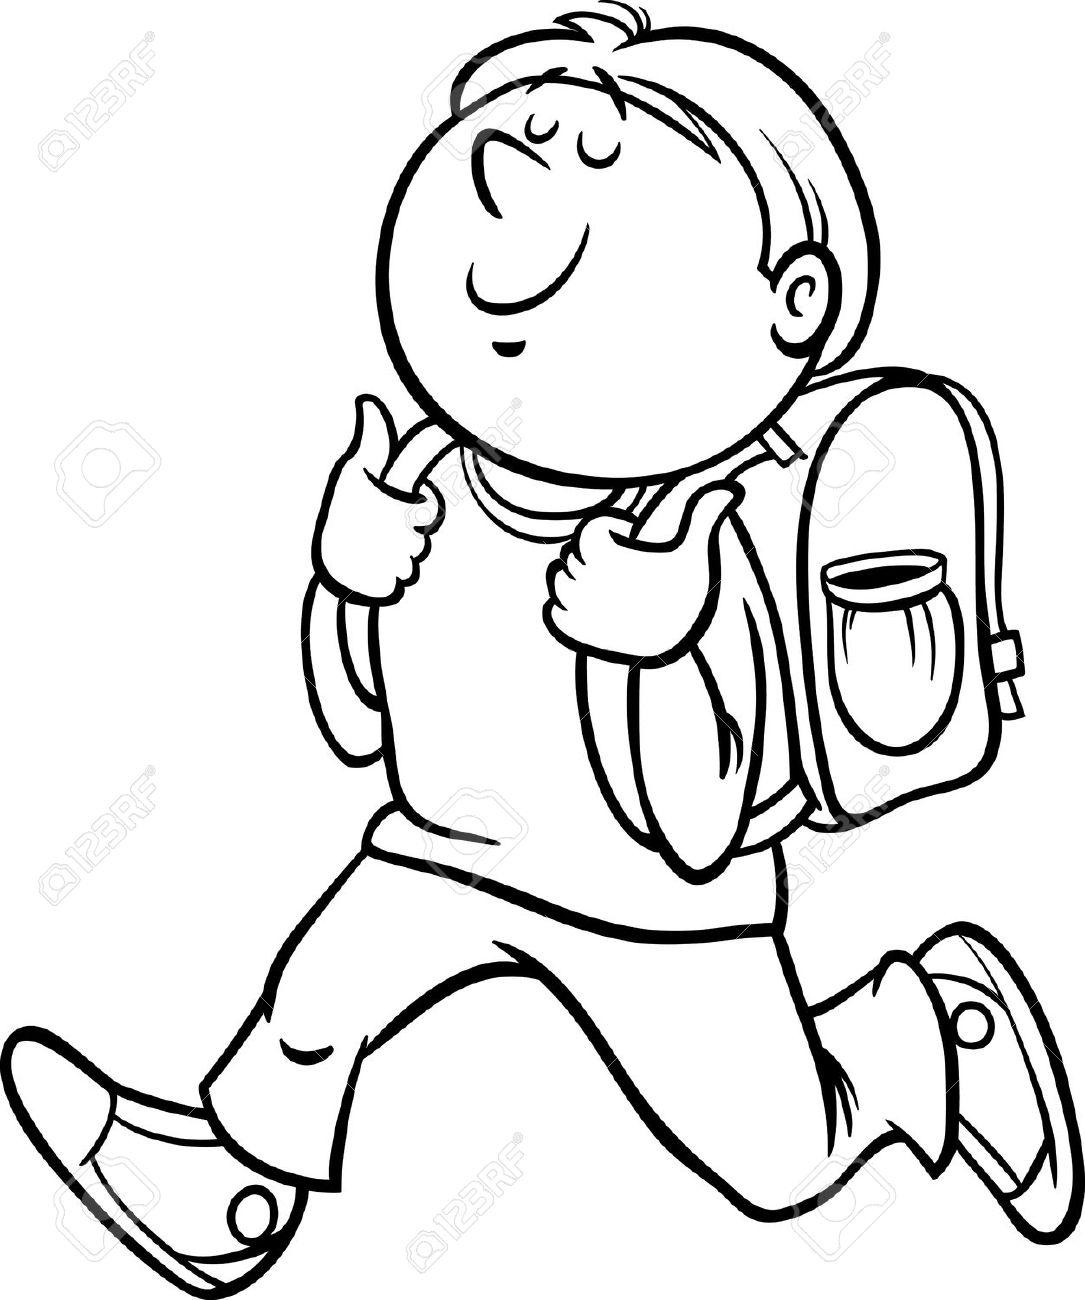 1085x1300 Boy Turning In Assignment To Teacher Clipart Black And White